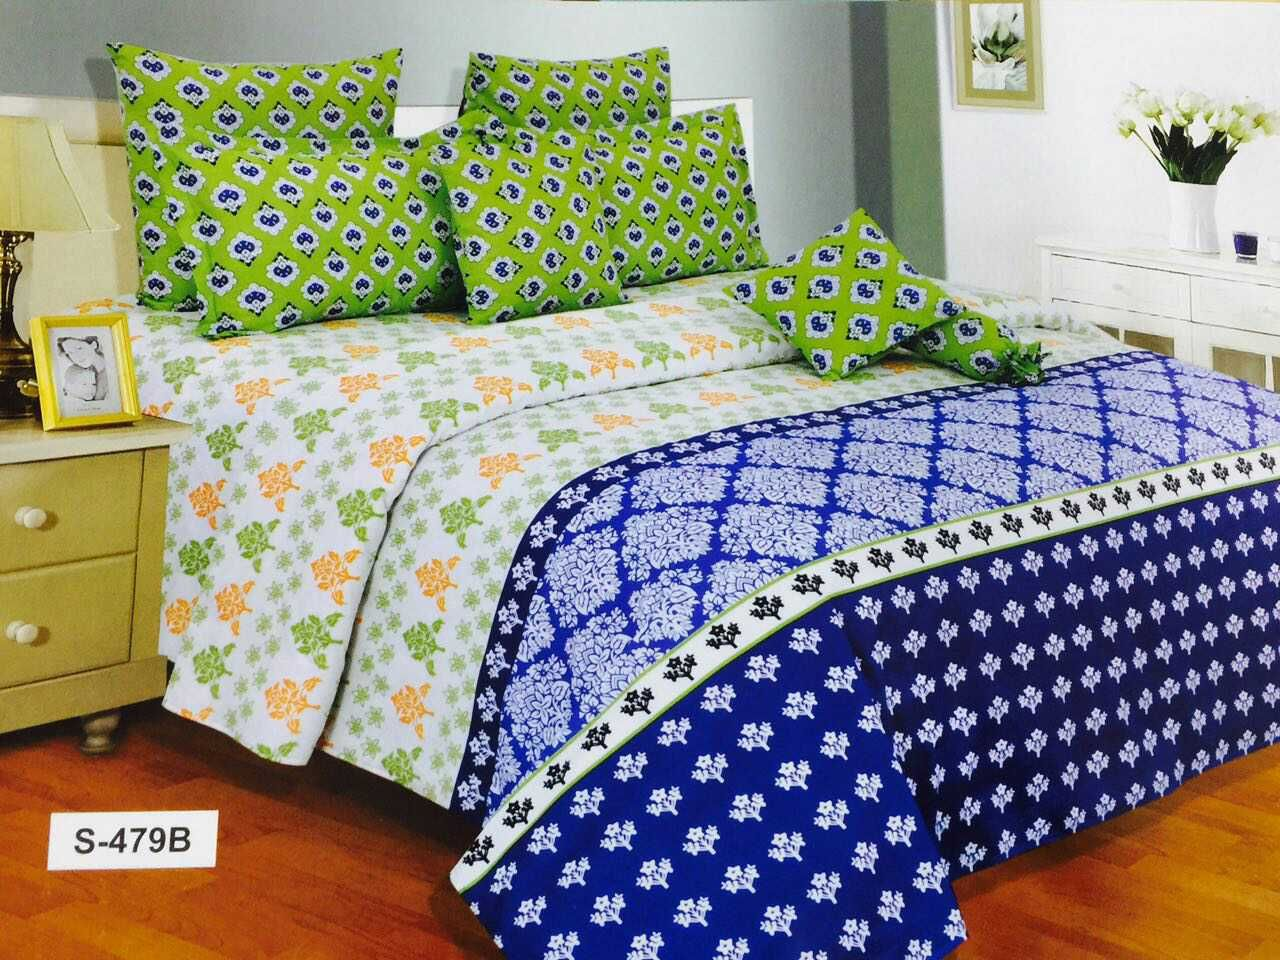 90x100 inone bed sheet17x27 intwo pillows40 sheeting